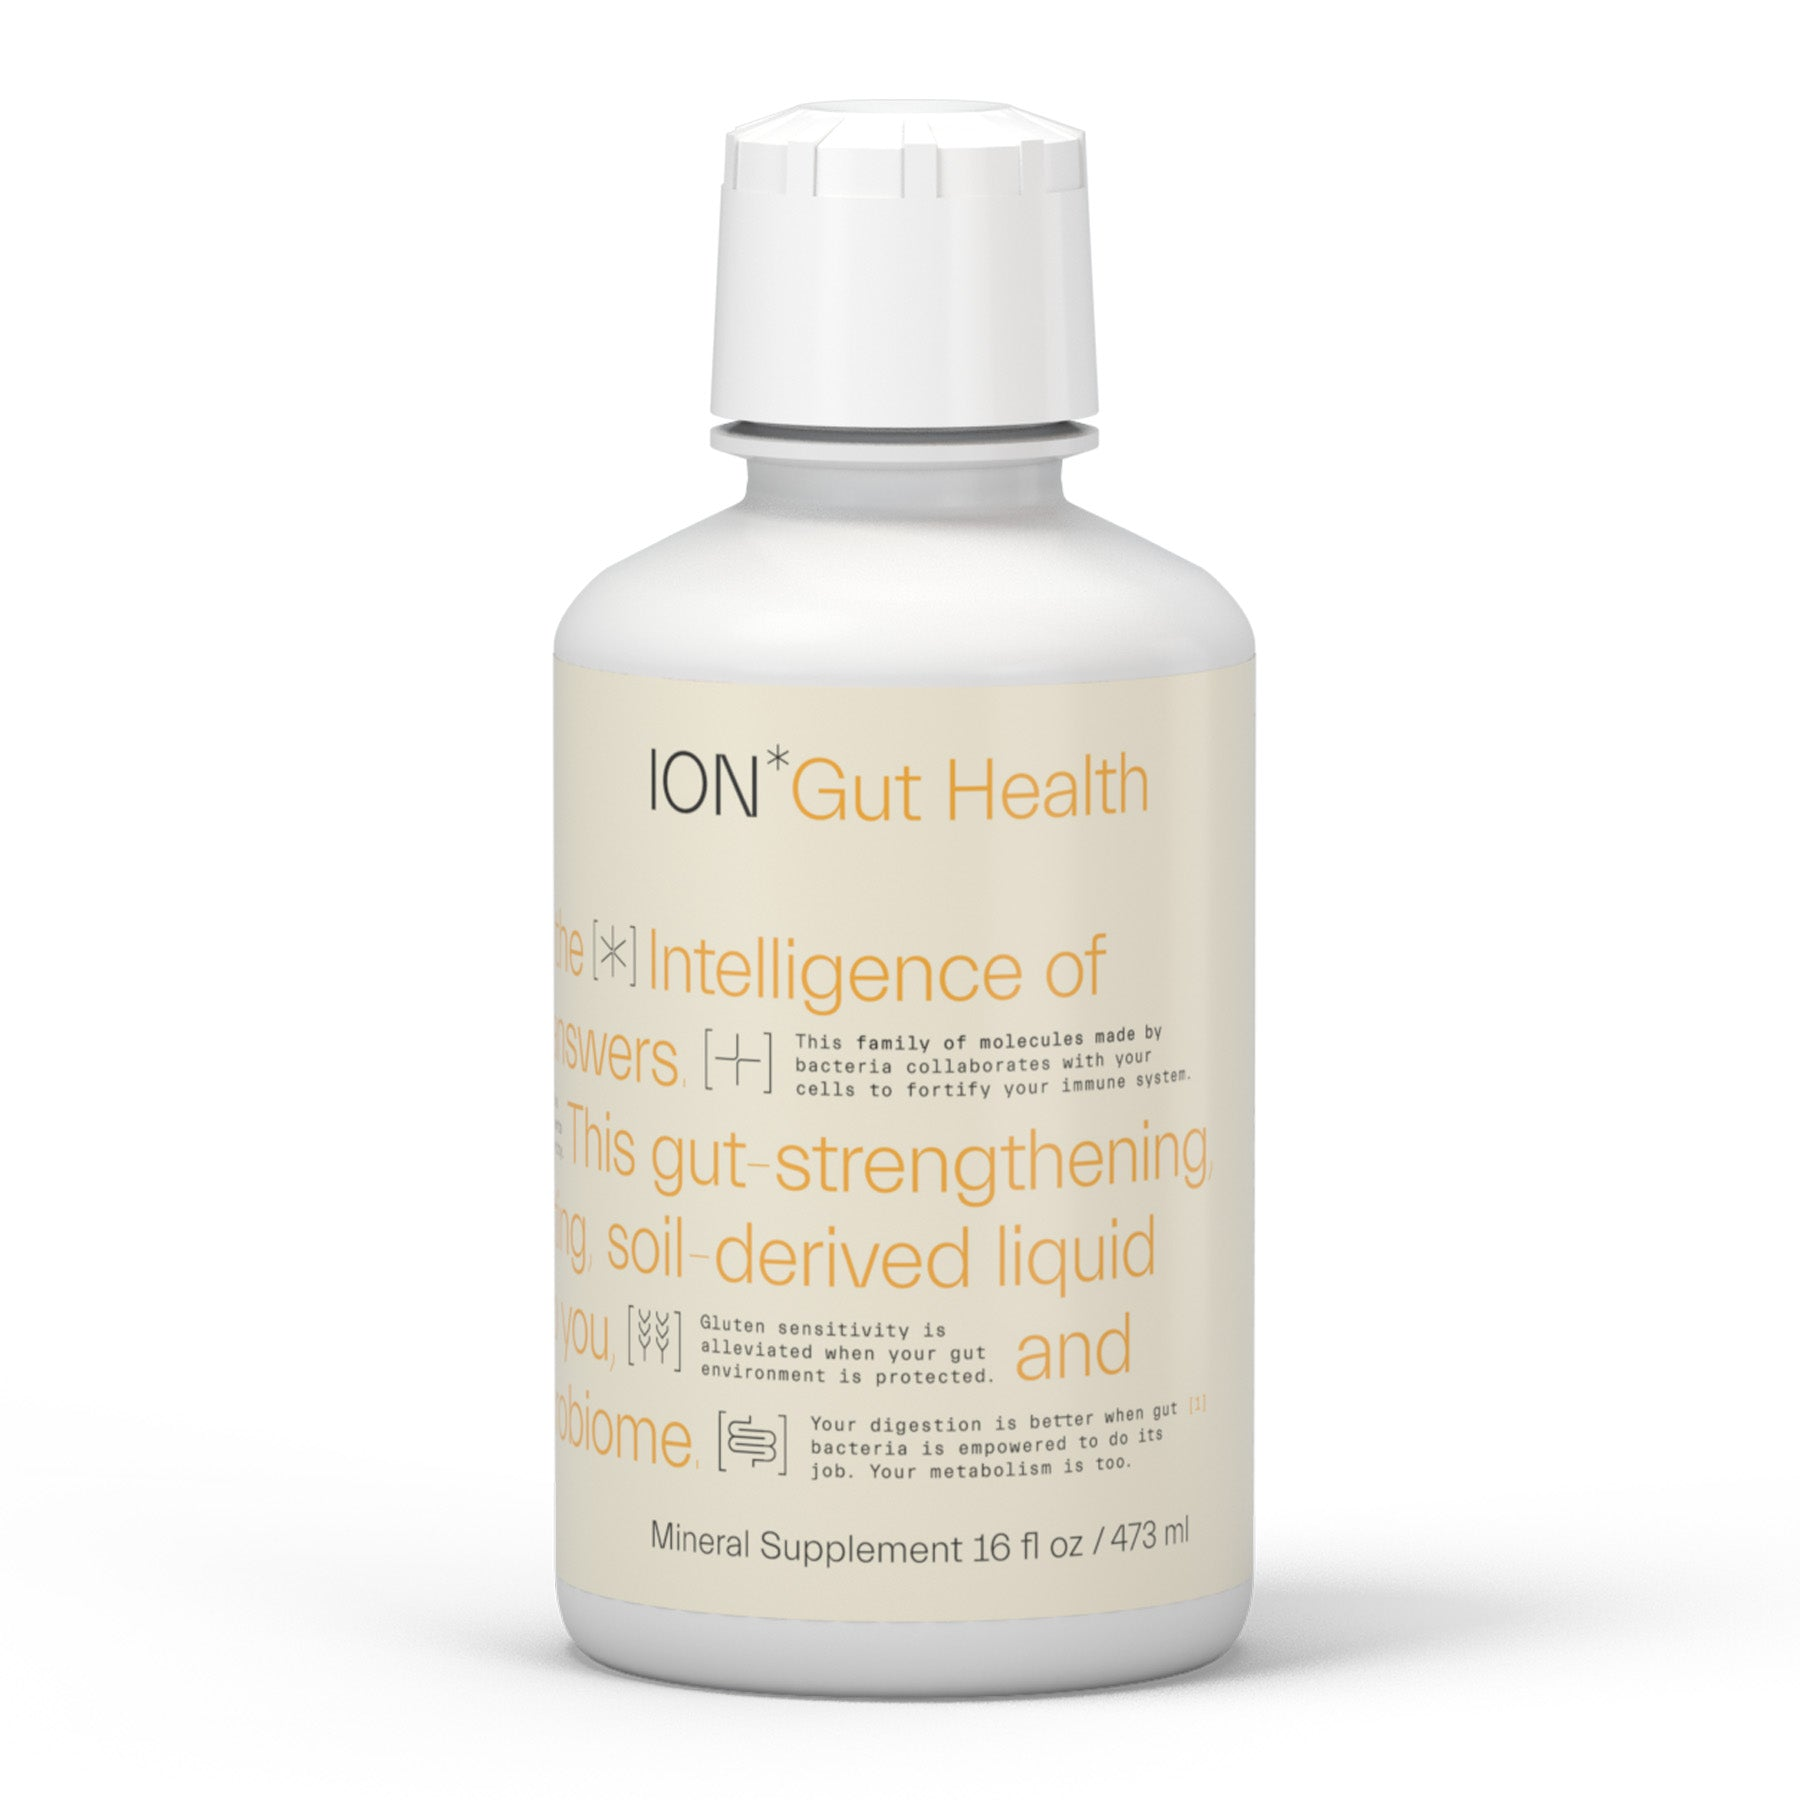 ION*Gut Health 16oz